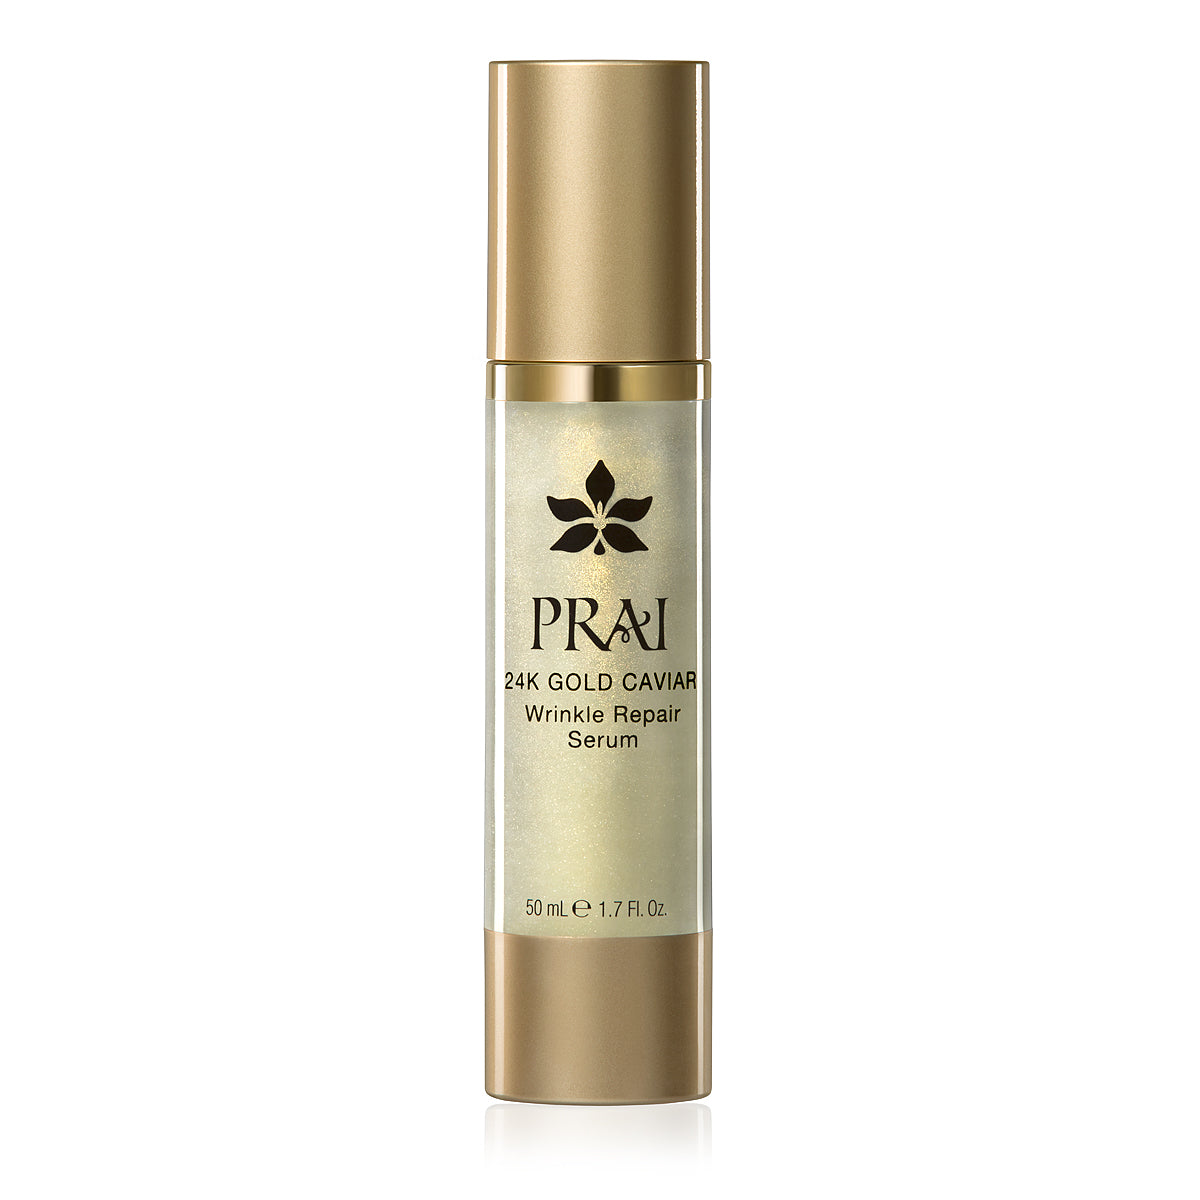 PRAI Beauty  24K Gold Caviar Wrinkle Repair Serum